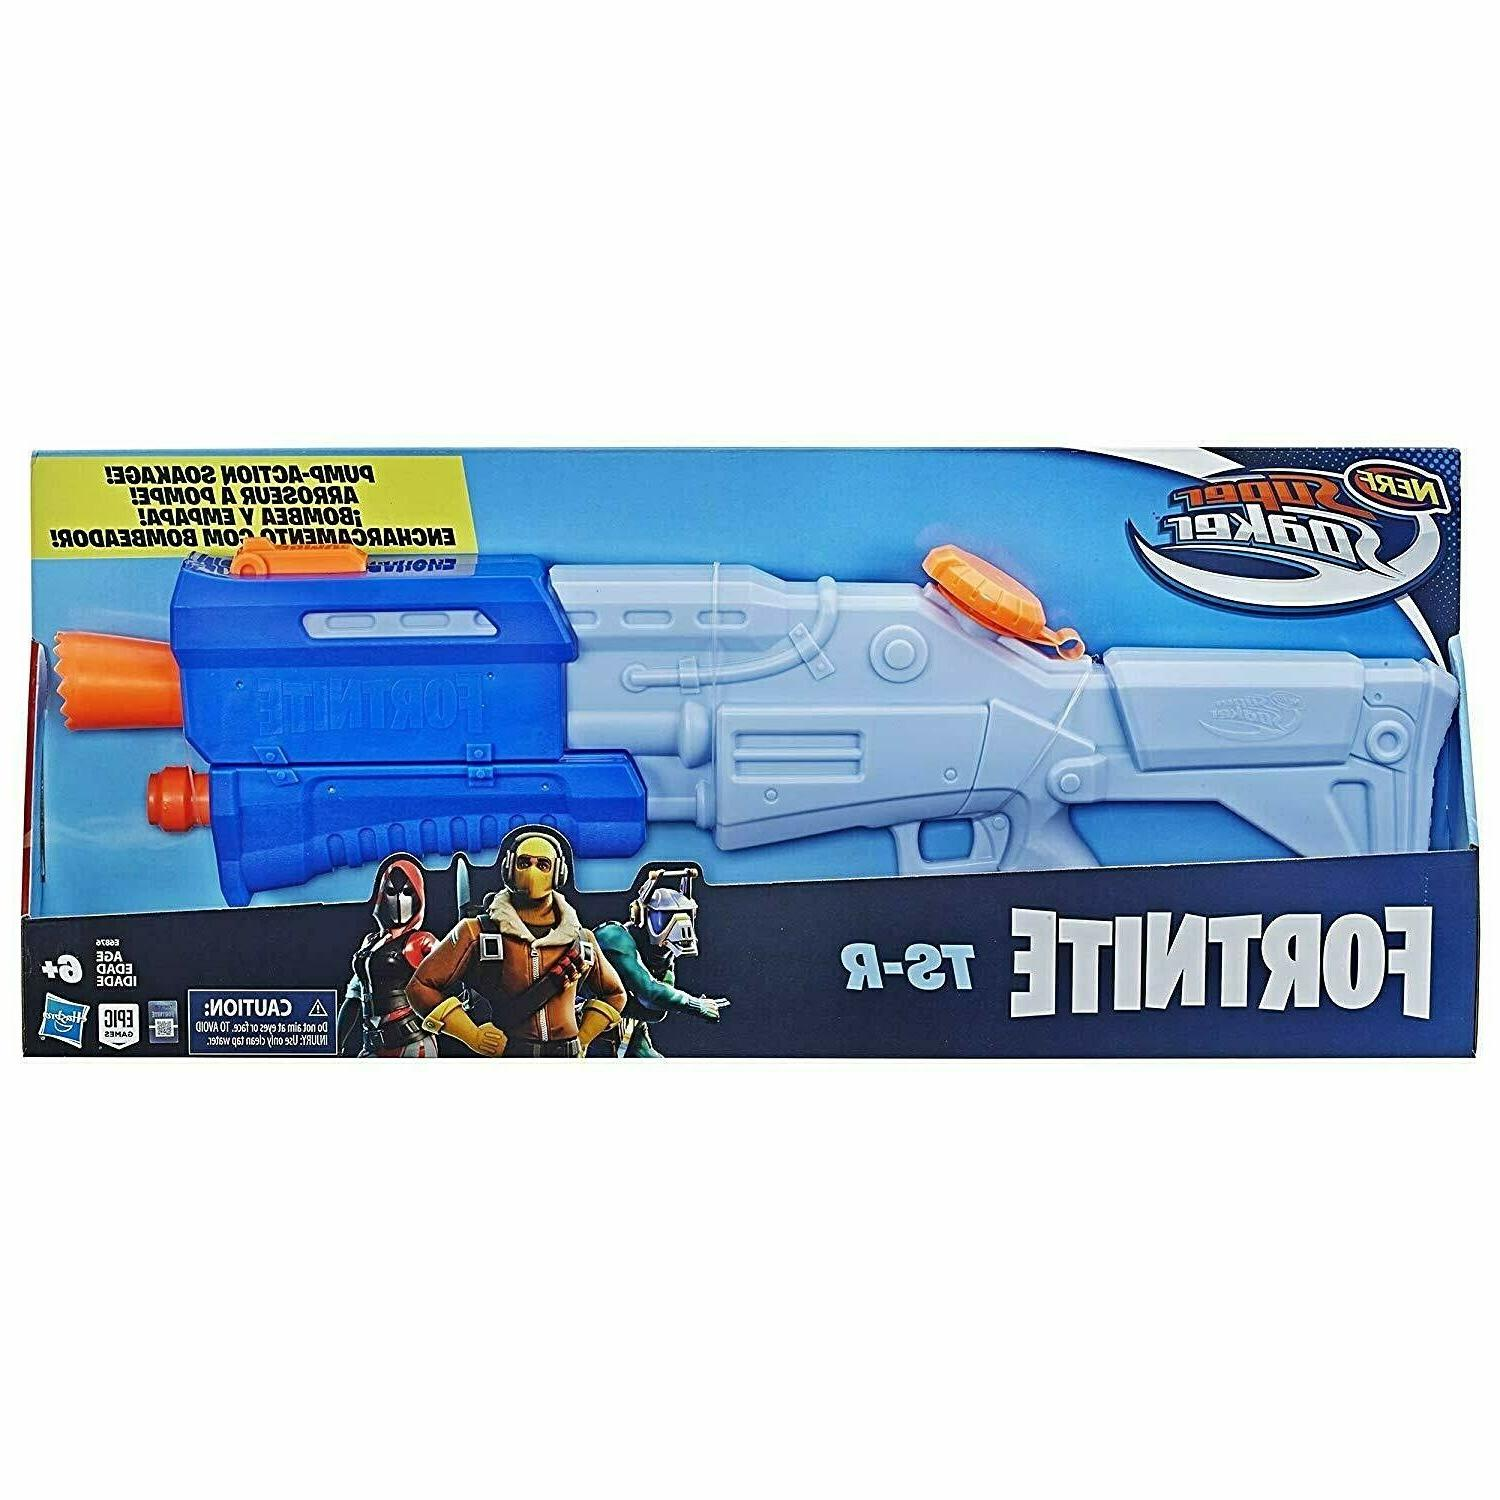 Nerf Soaker Gun Toy For